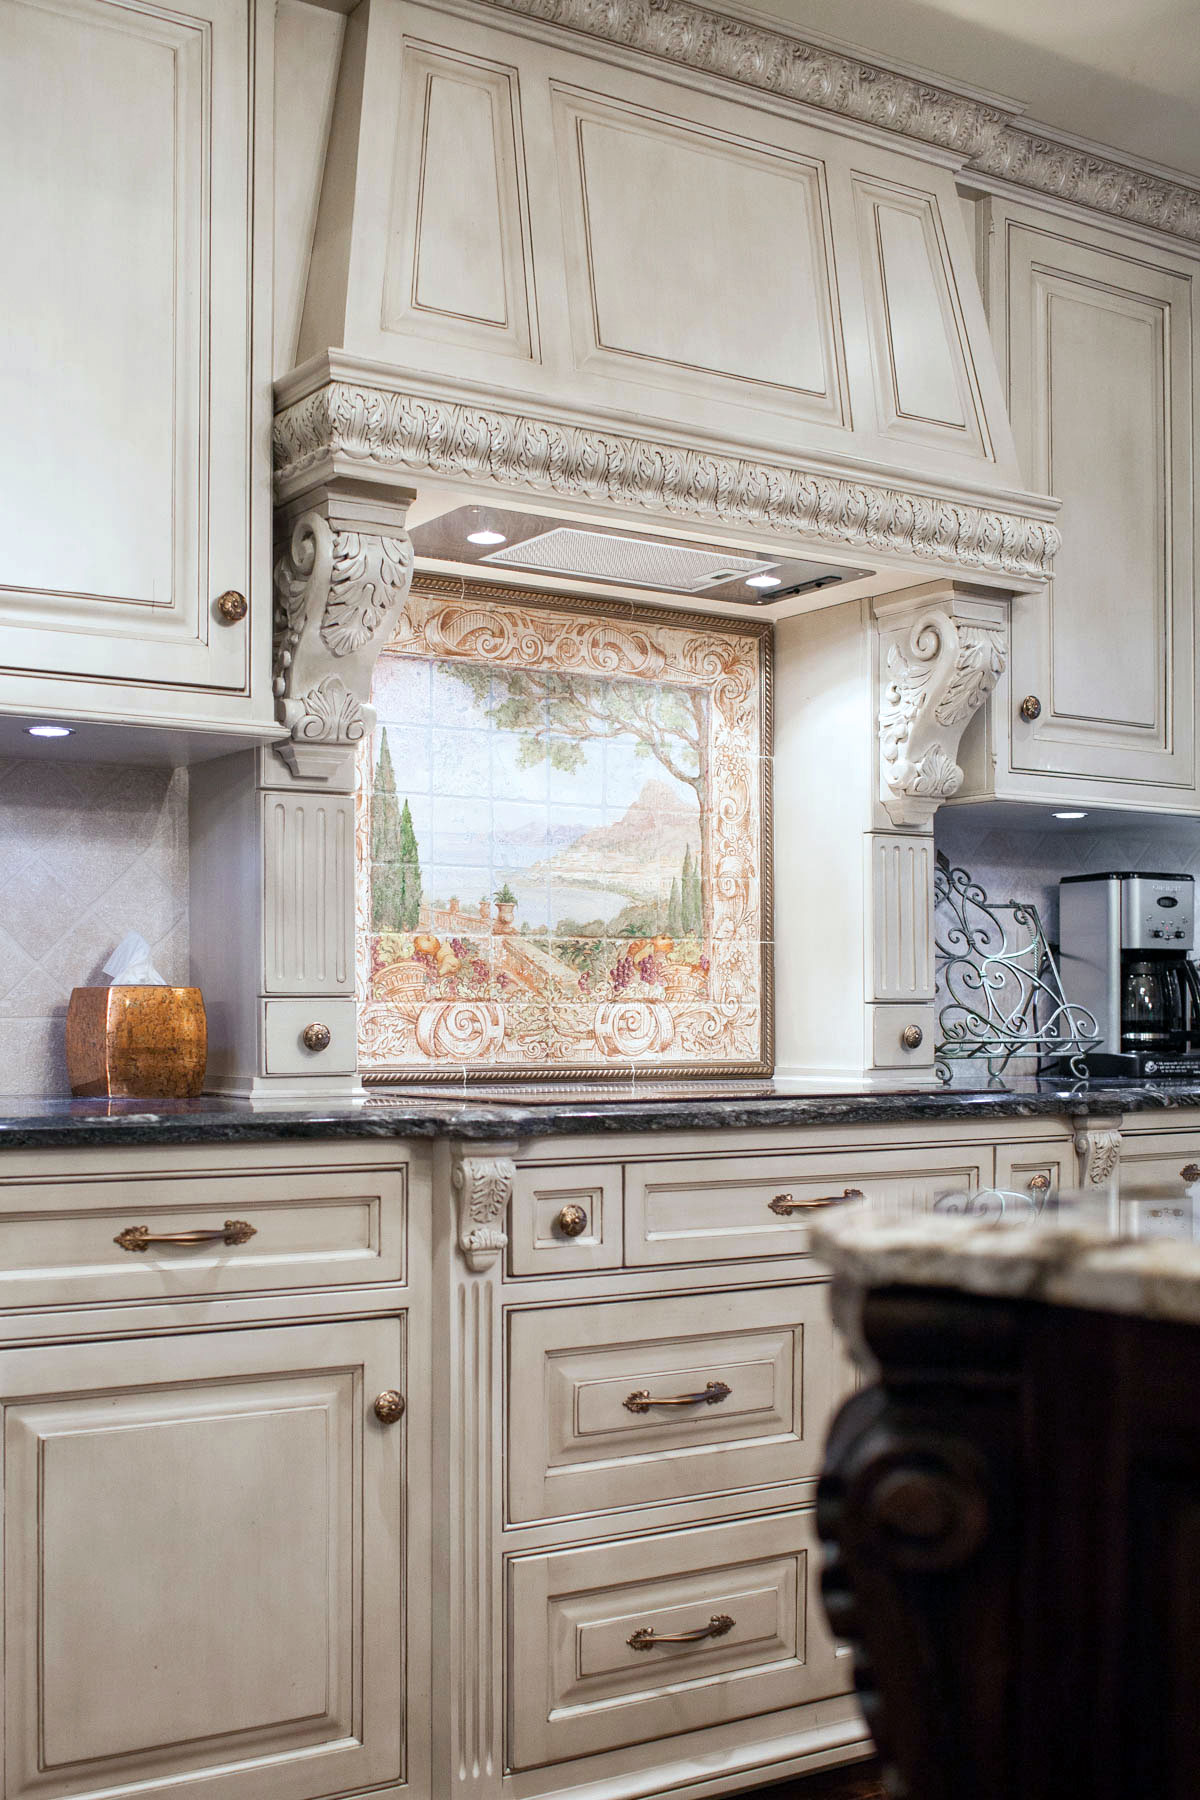 Deco Salle De Bain Grise Et Blanche » Kitchen Remodeling Rochester Ny |  Most Voted